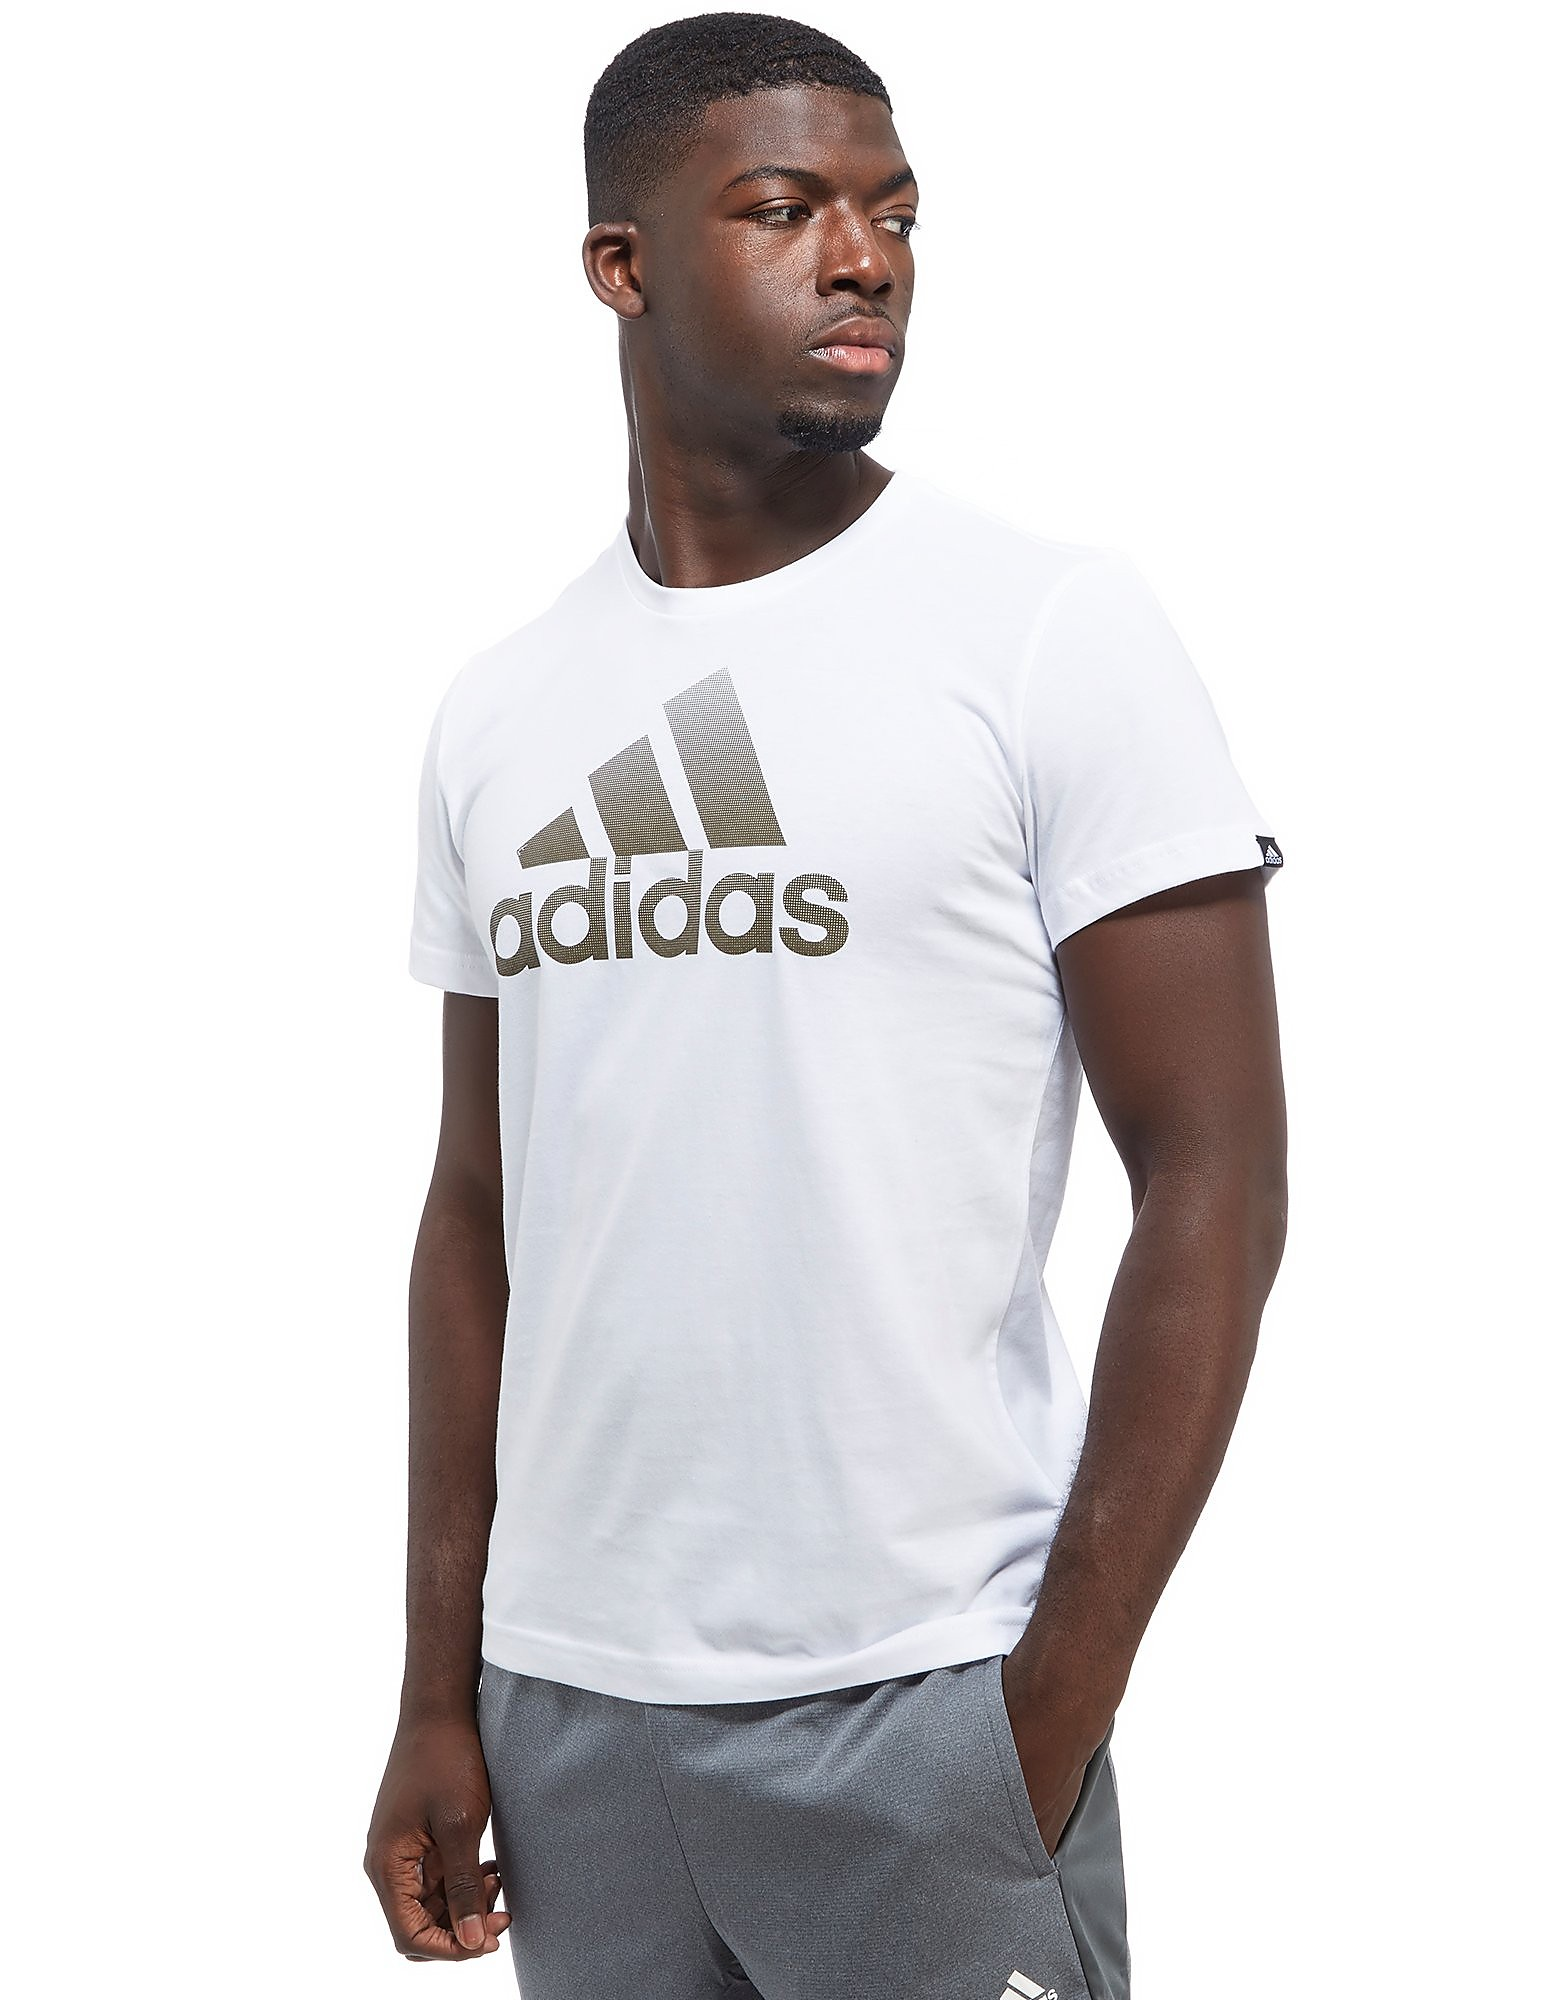 adidas Perforated Fade T-Shirt